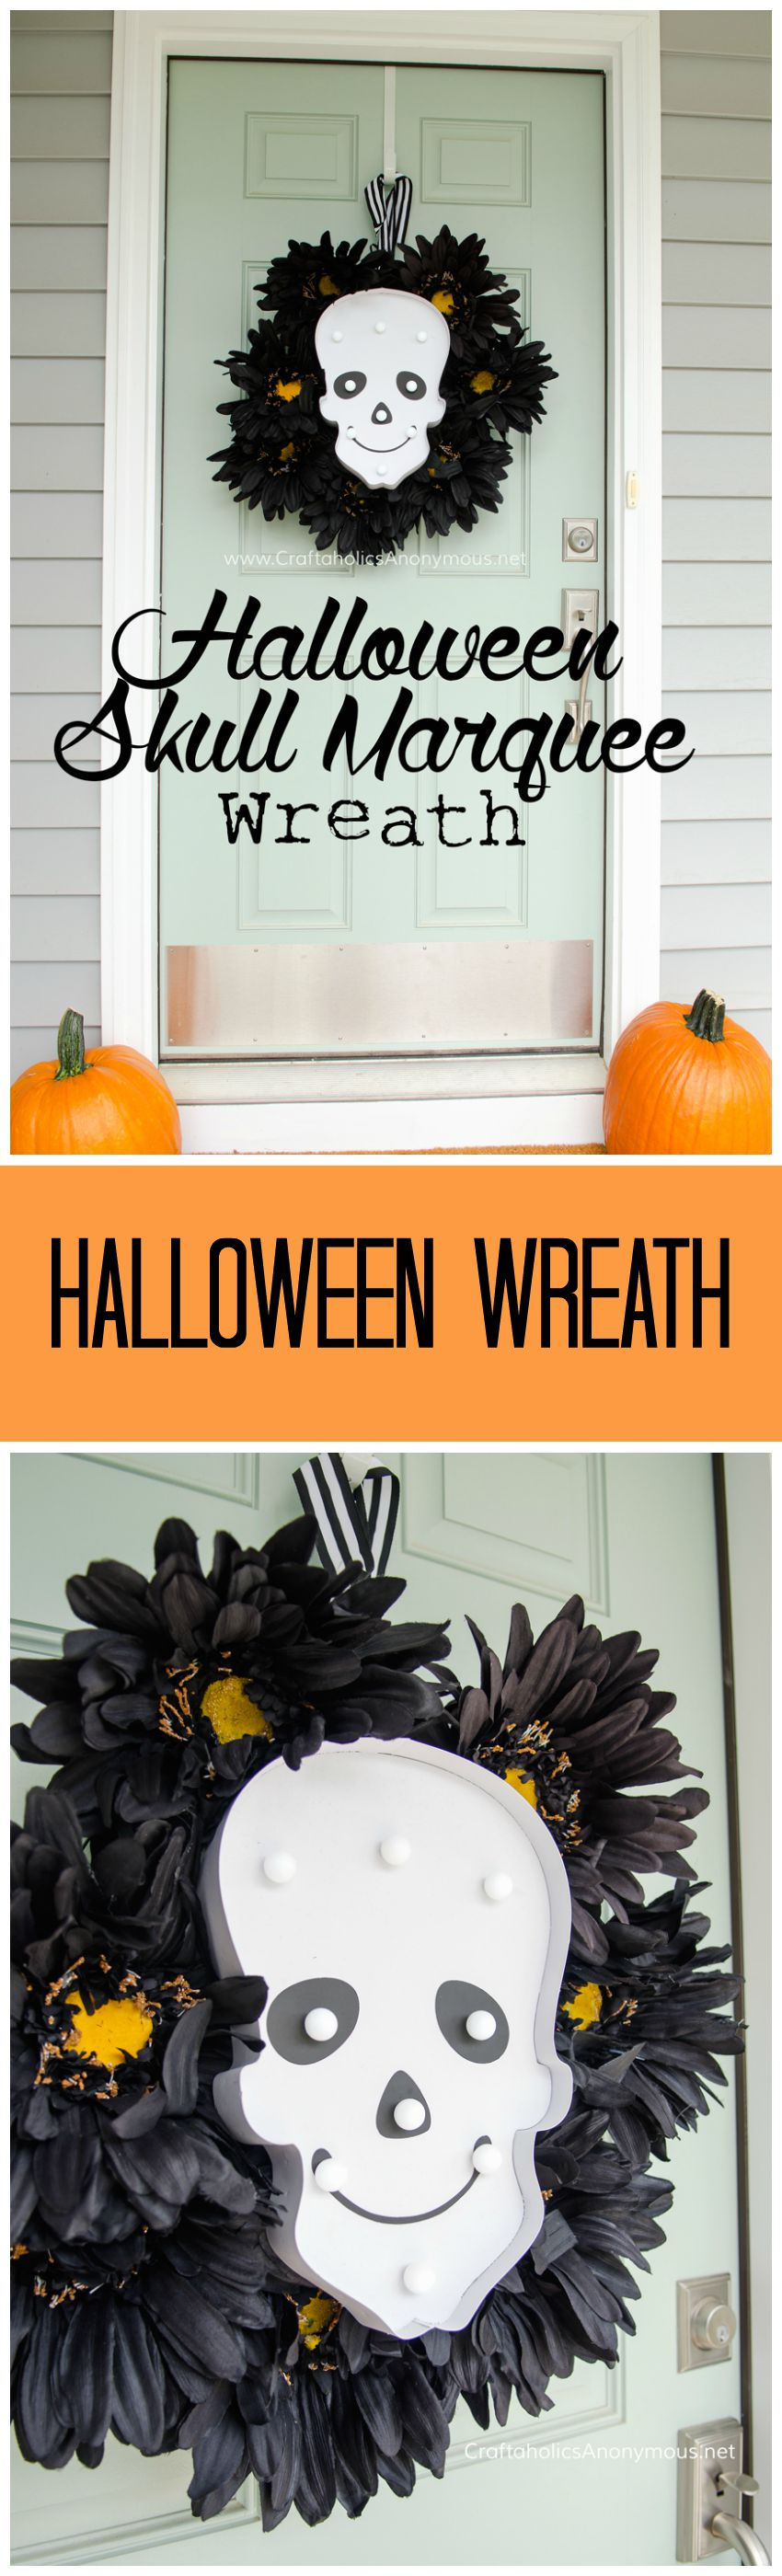 DIY Halloween Marquee Wreath Tutorial || Love that the lights turn on and glow in the dark.Perfect for Halloween night! found on www.CraftaholicsAnonymous.net